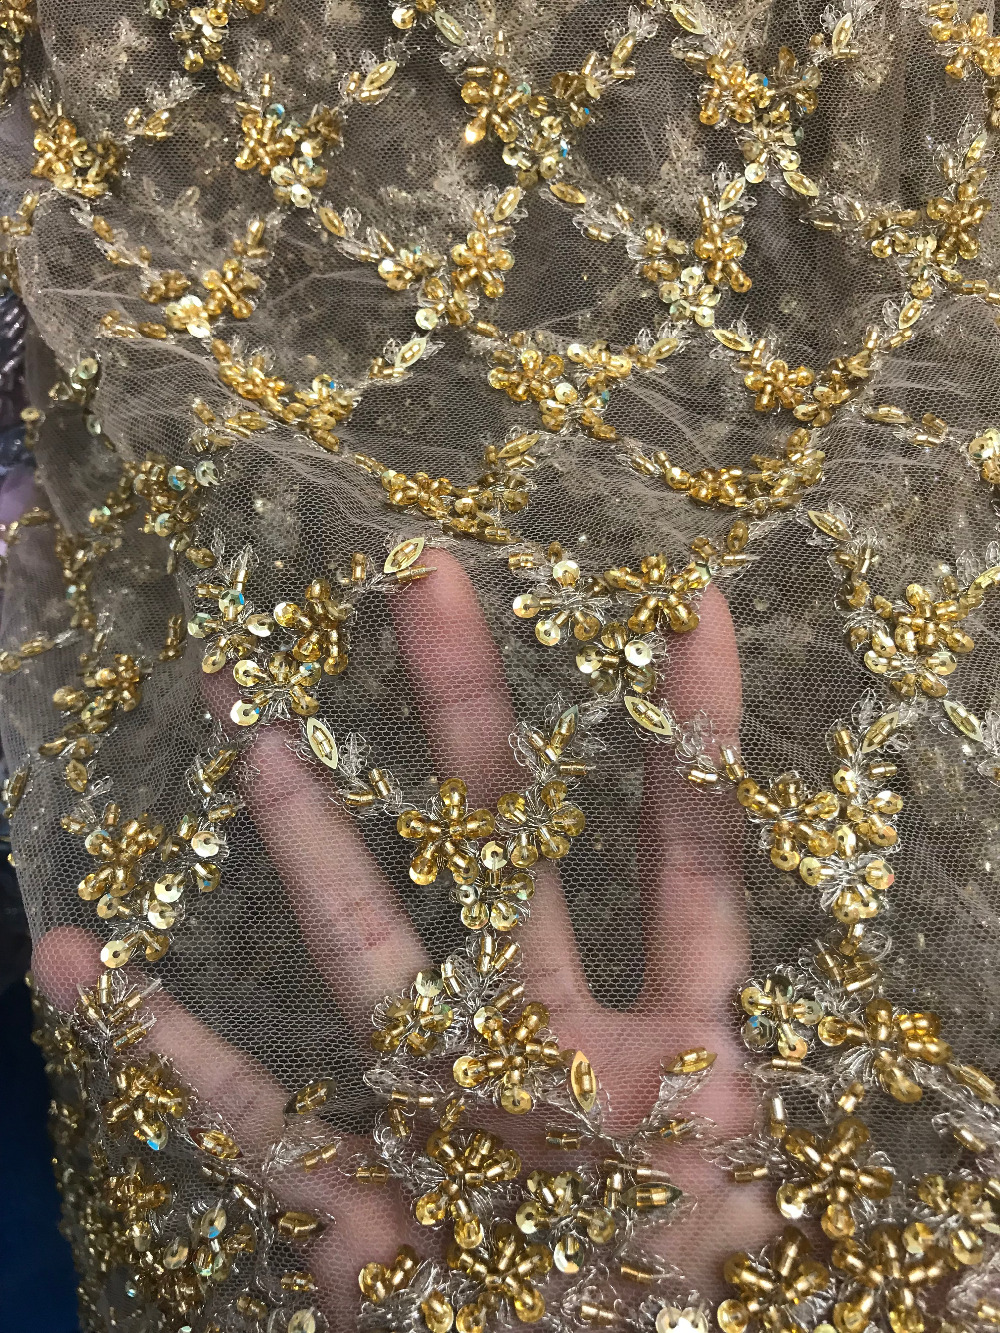 Luxury gold colour french net sequins embroidery tulle mesh lace fabric with beads for wedding dress|Lace| |  - title=